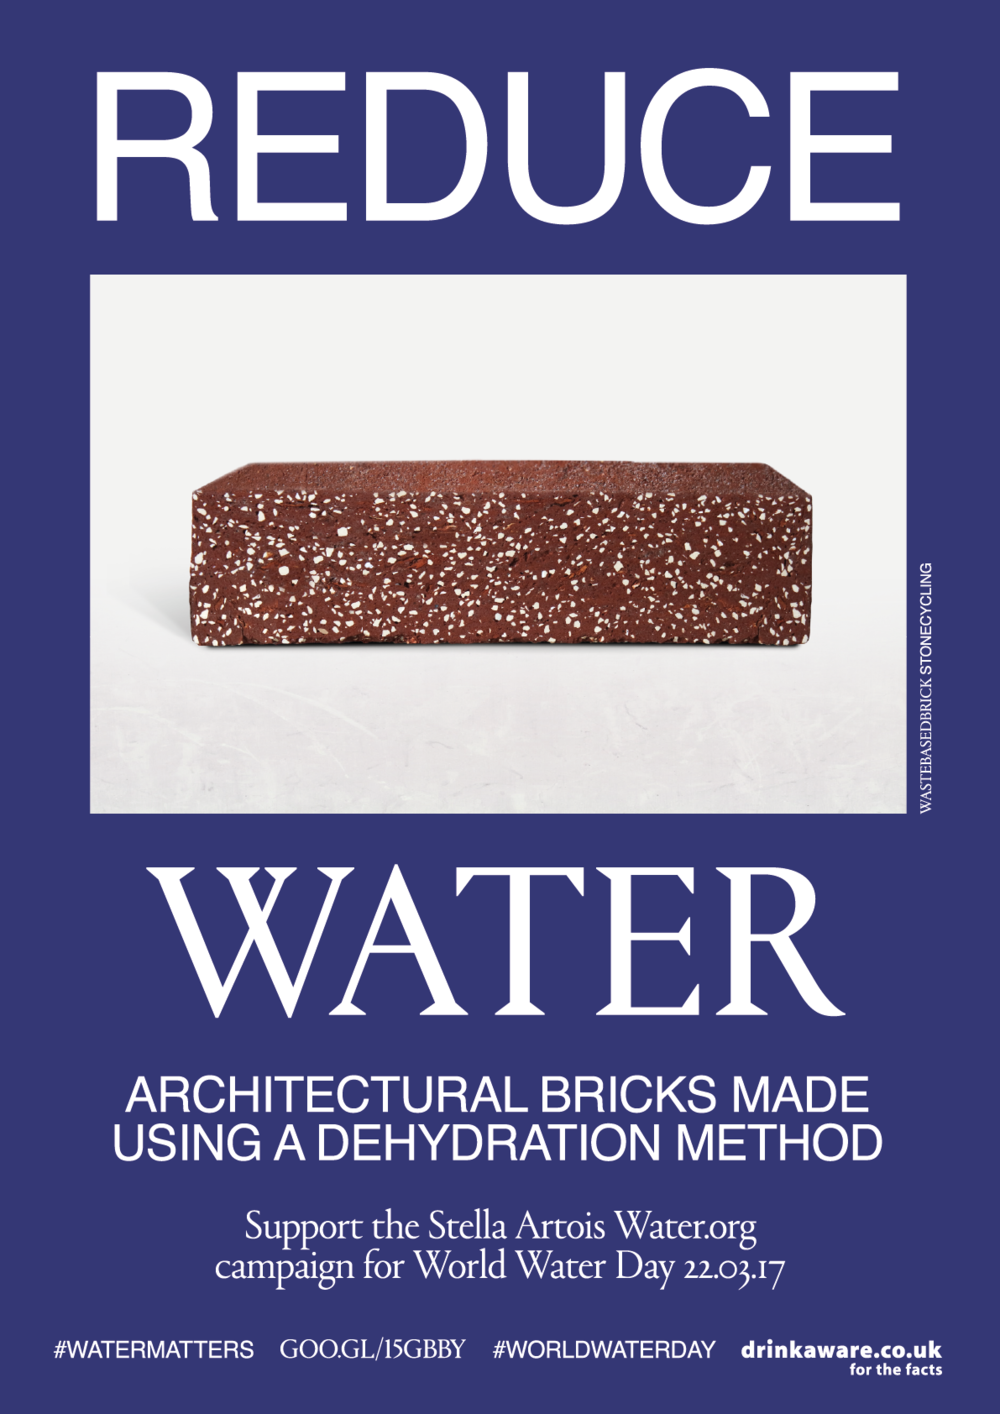 REDUCE WATER, MATTER Architecture and water are so synonymous with each other. Whether it be laying the foundations right down to the plumbing facilities. StoneCycling have created bricks which are now being constructed using a dehydration process rather than water.